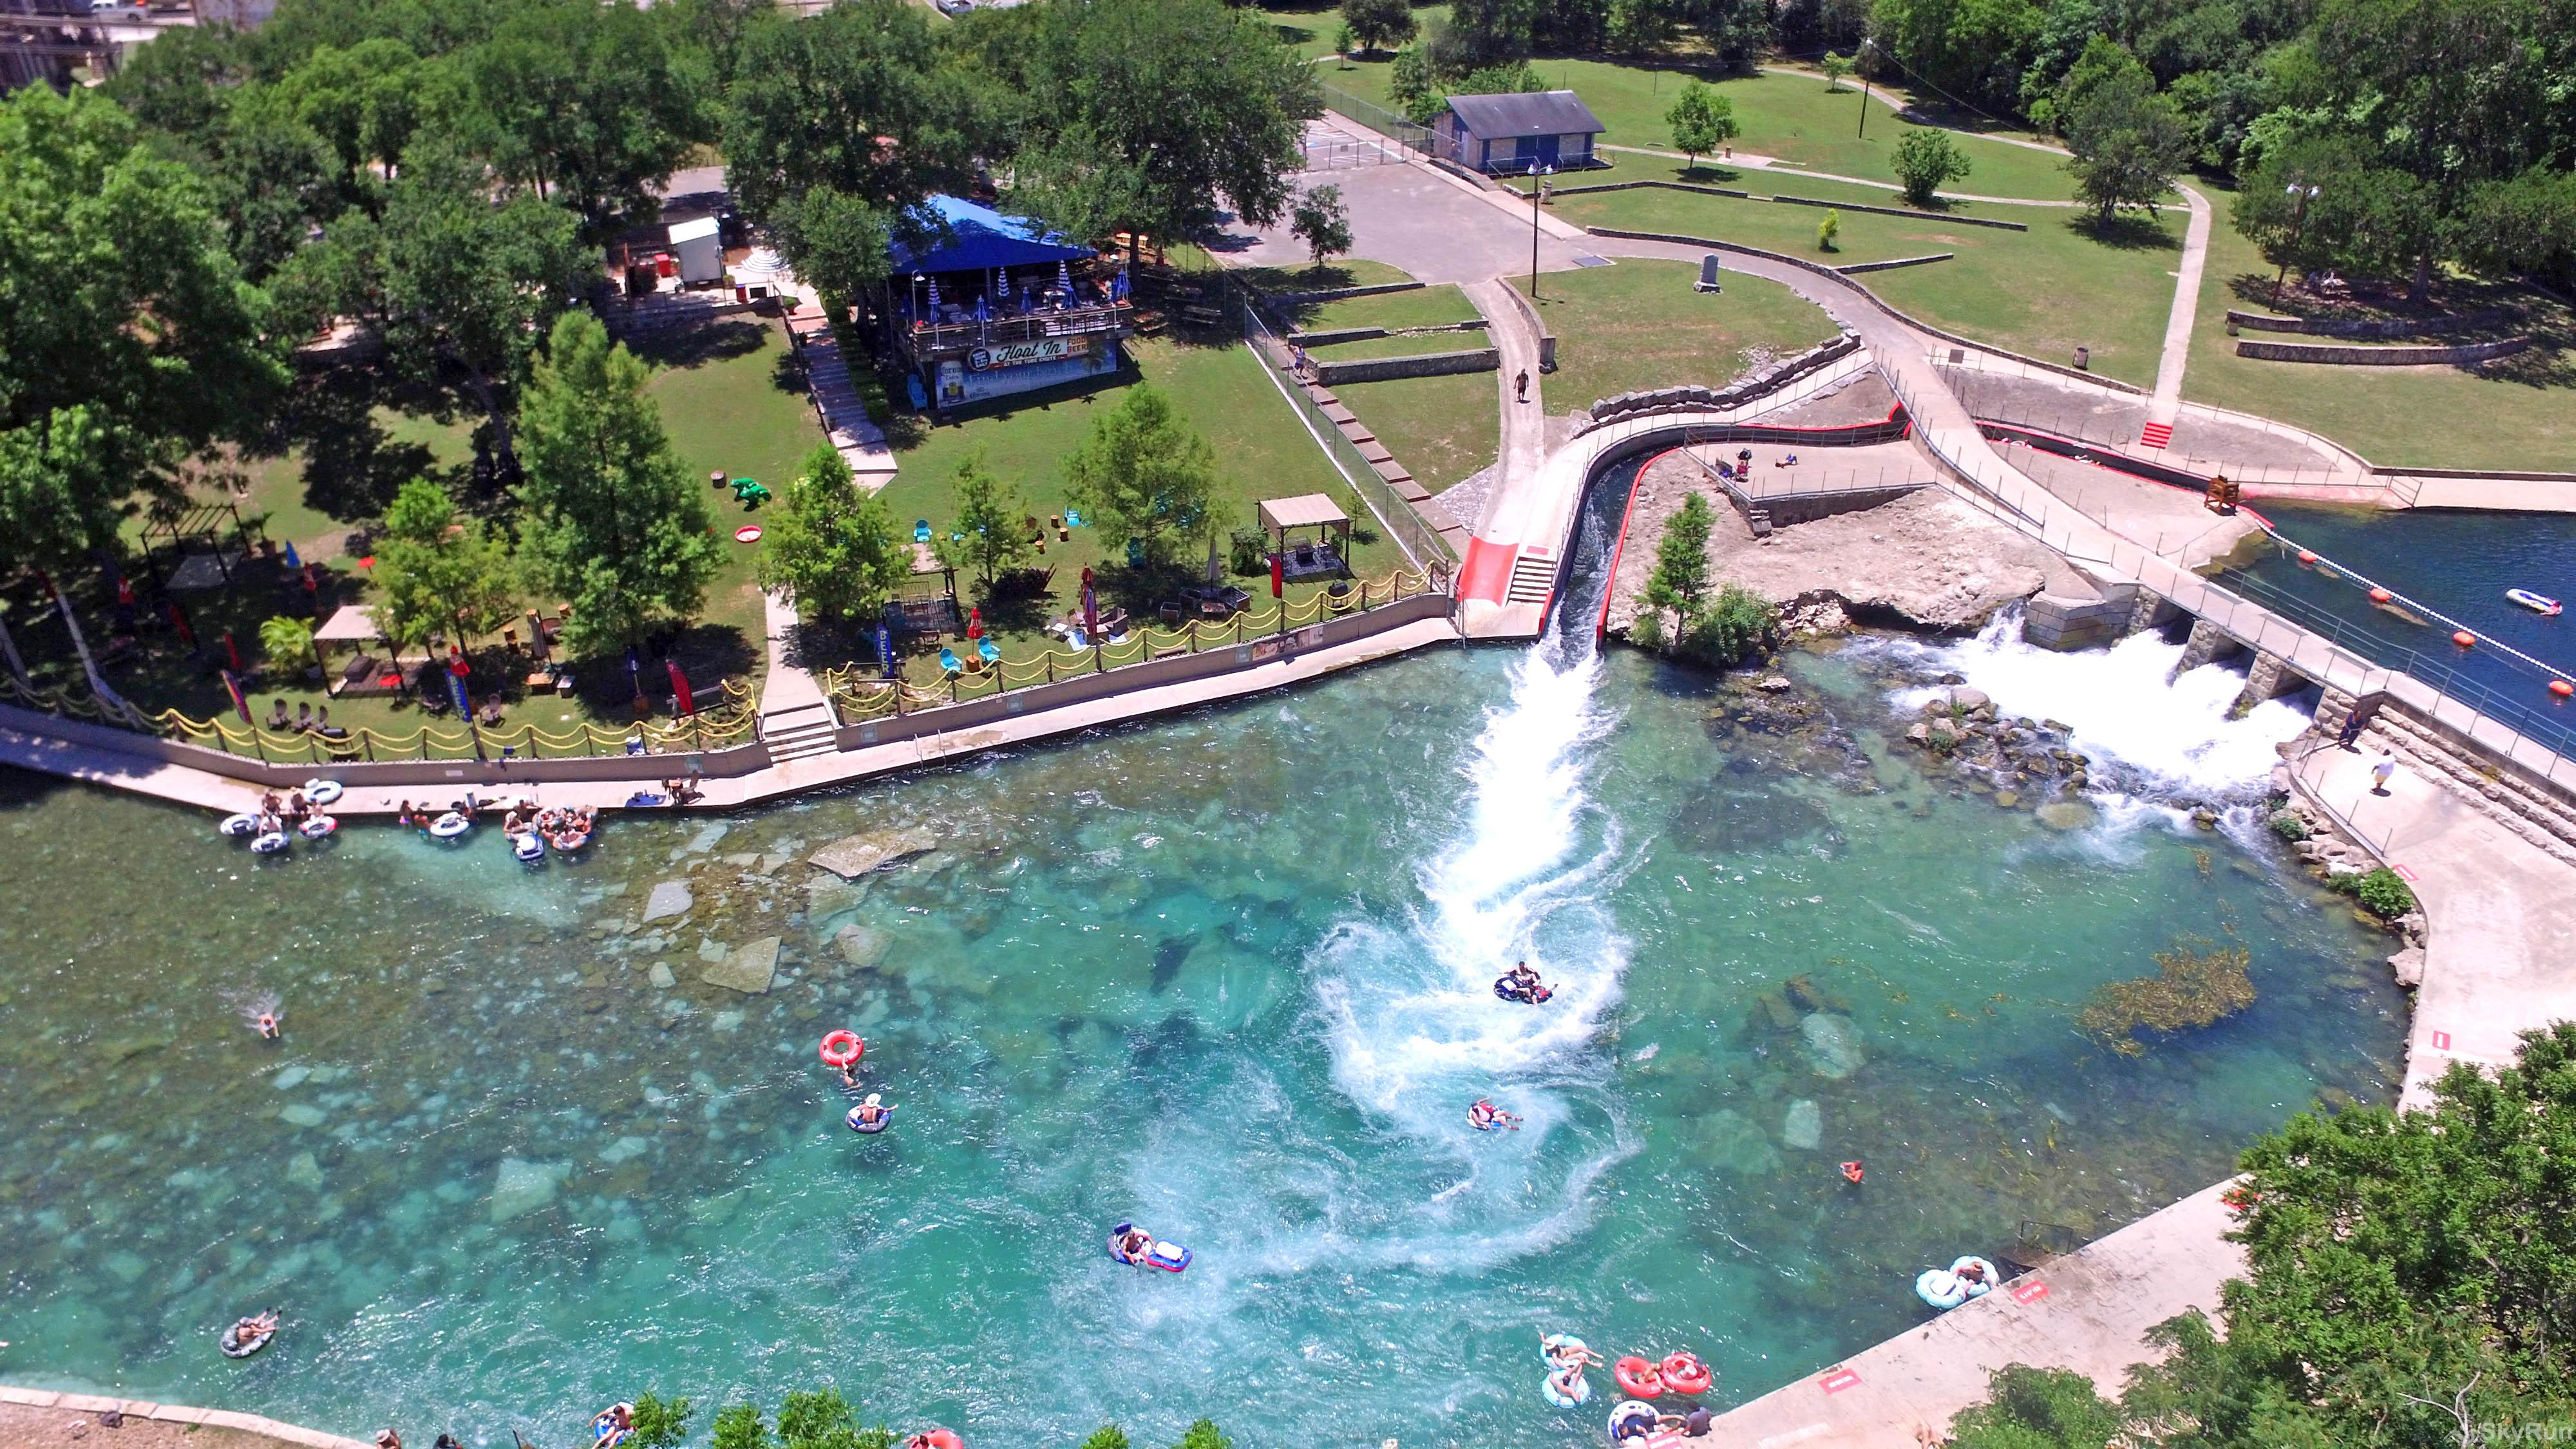 WATER'S EDGE RETREAT Comal River Tube Chute in nearby New Braunfels